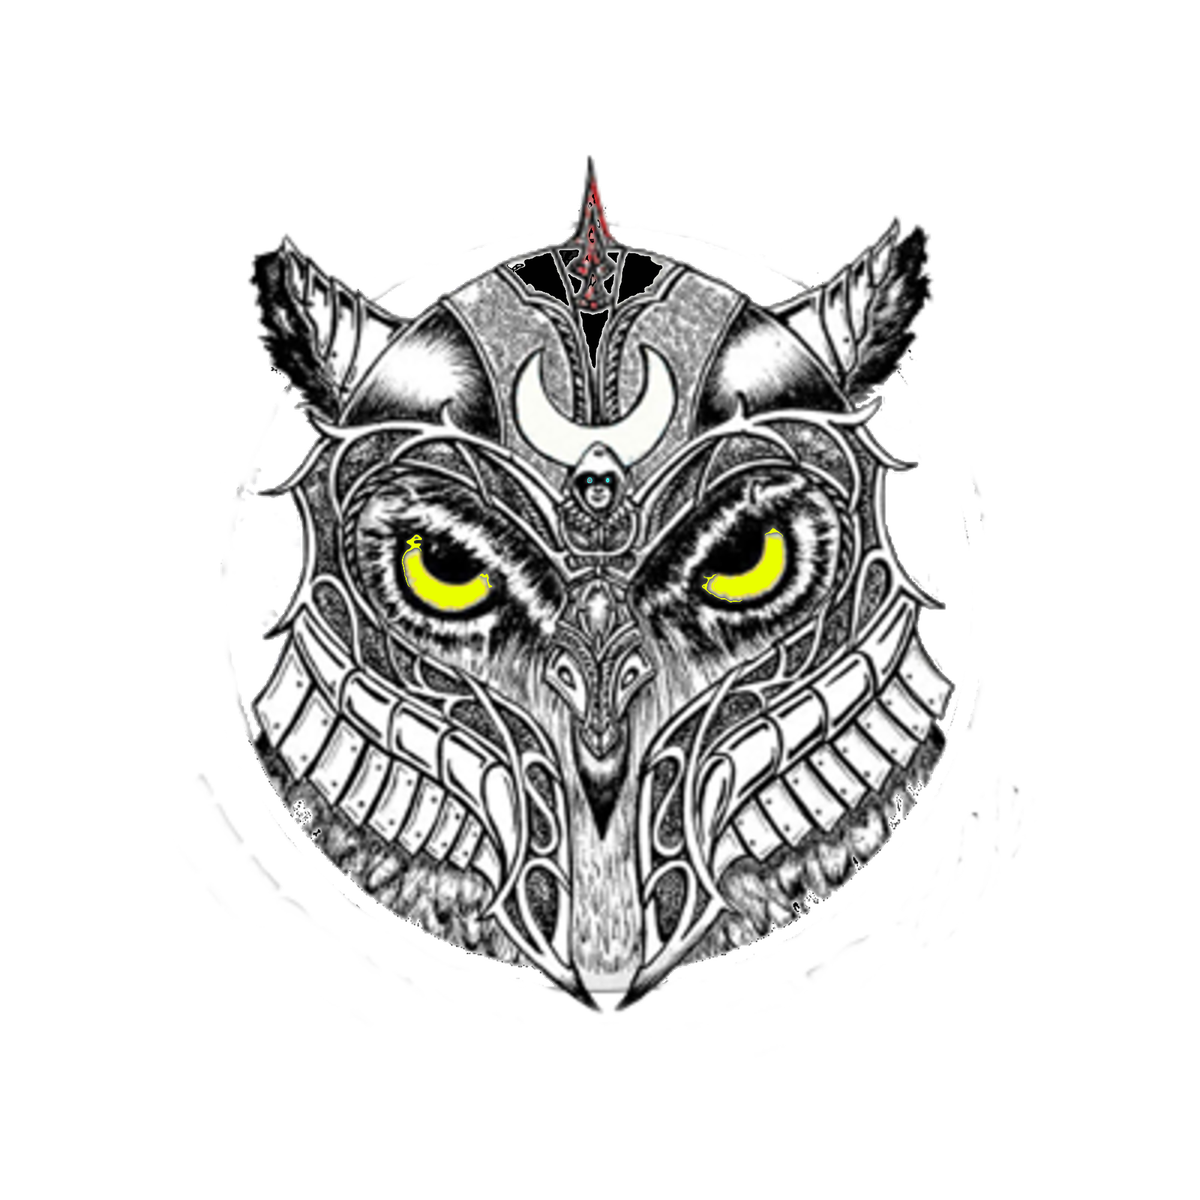 Avalanche drawing magic owl. Media tweets by knight